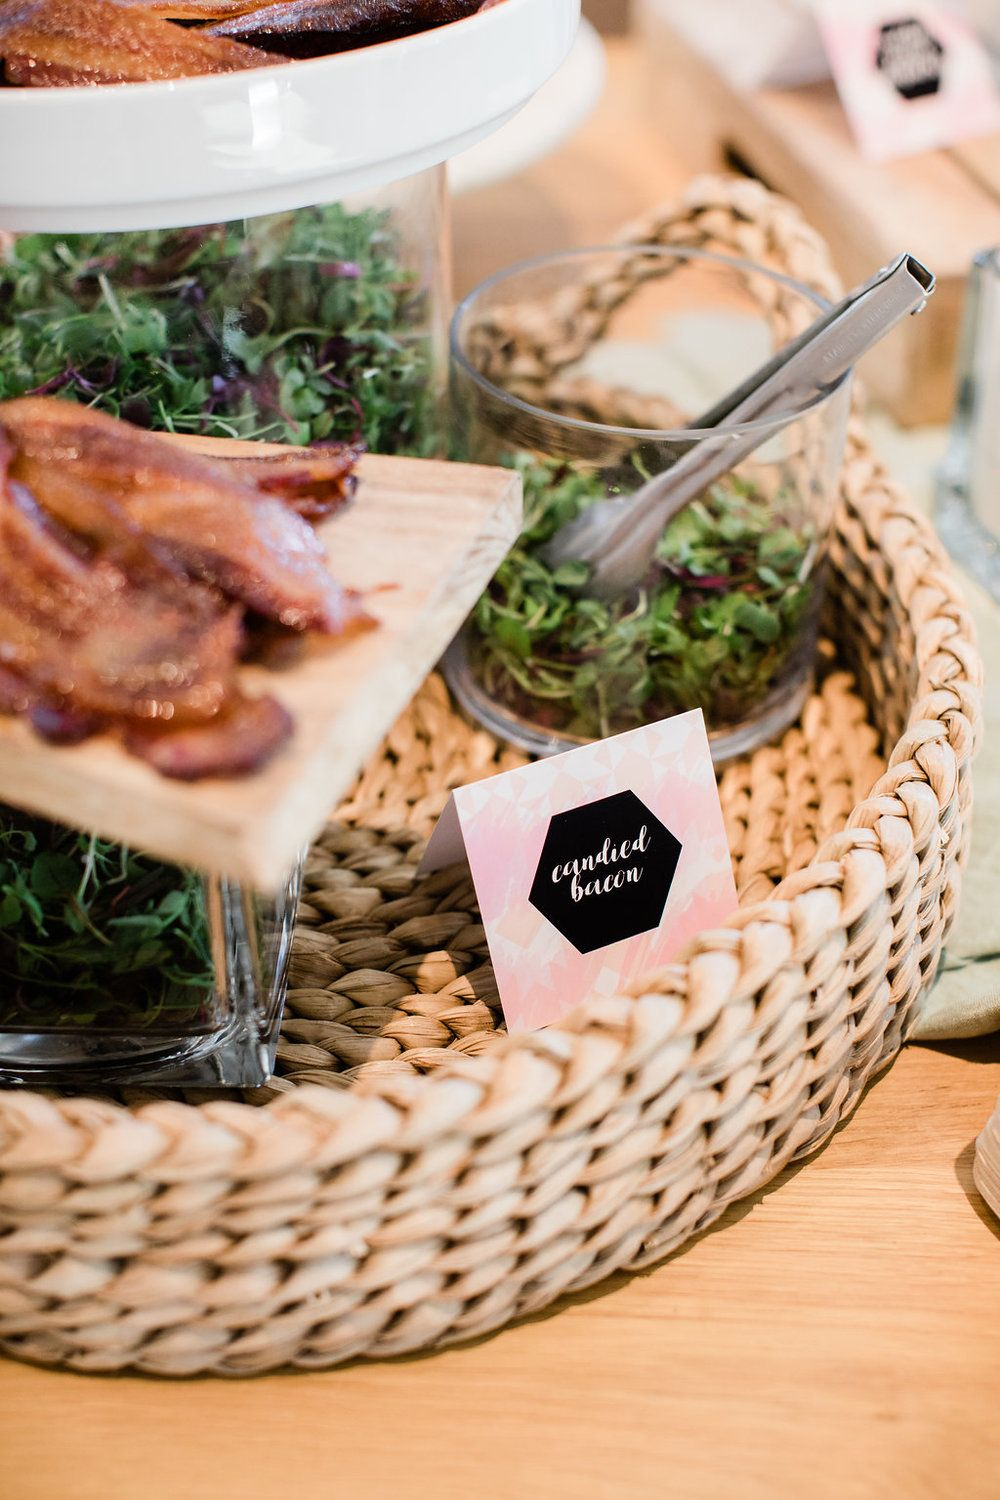 Wedding Registry Event with Crate and Barrel Event food